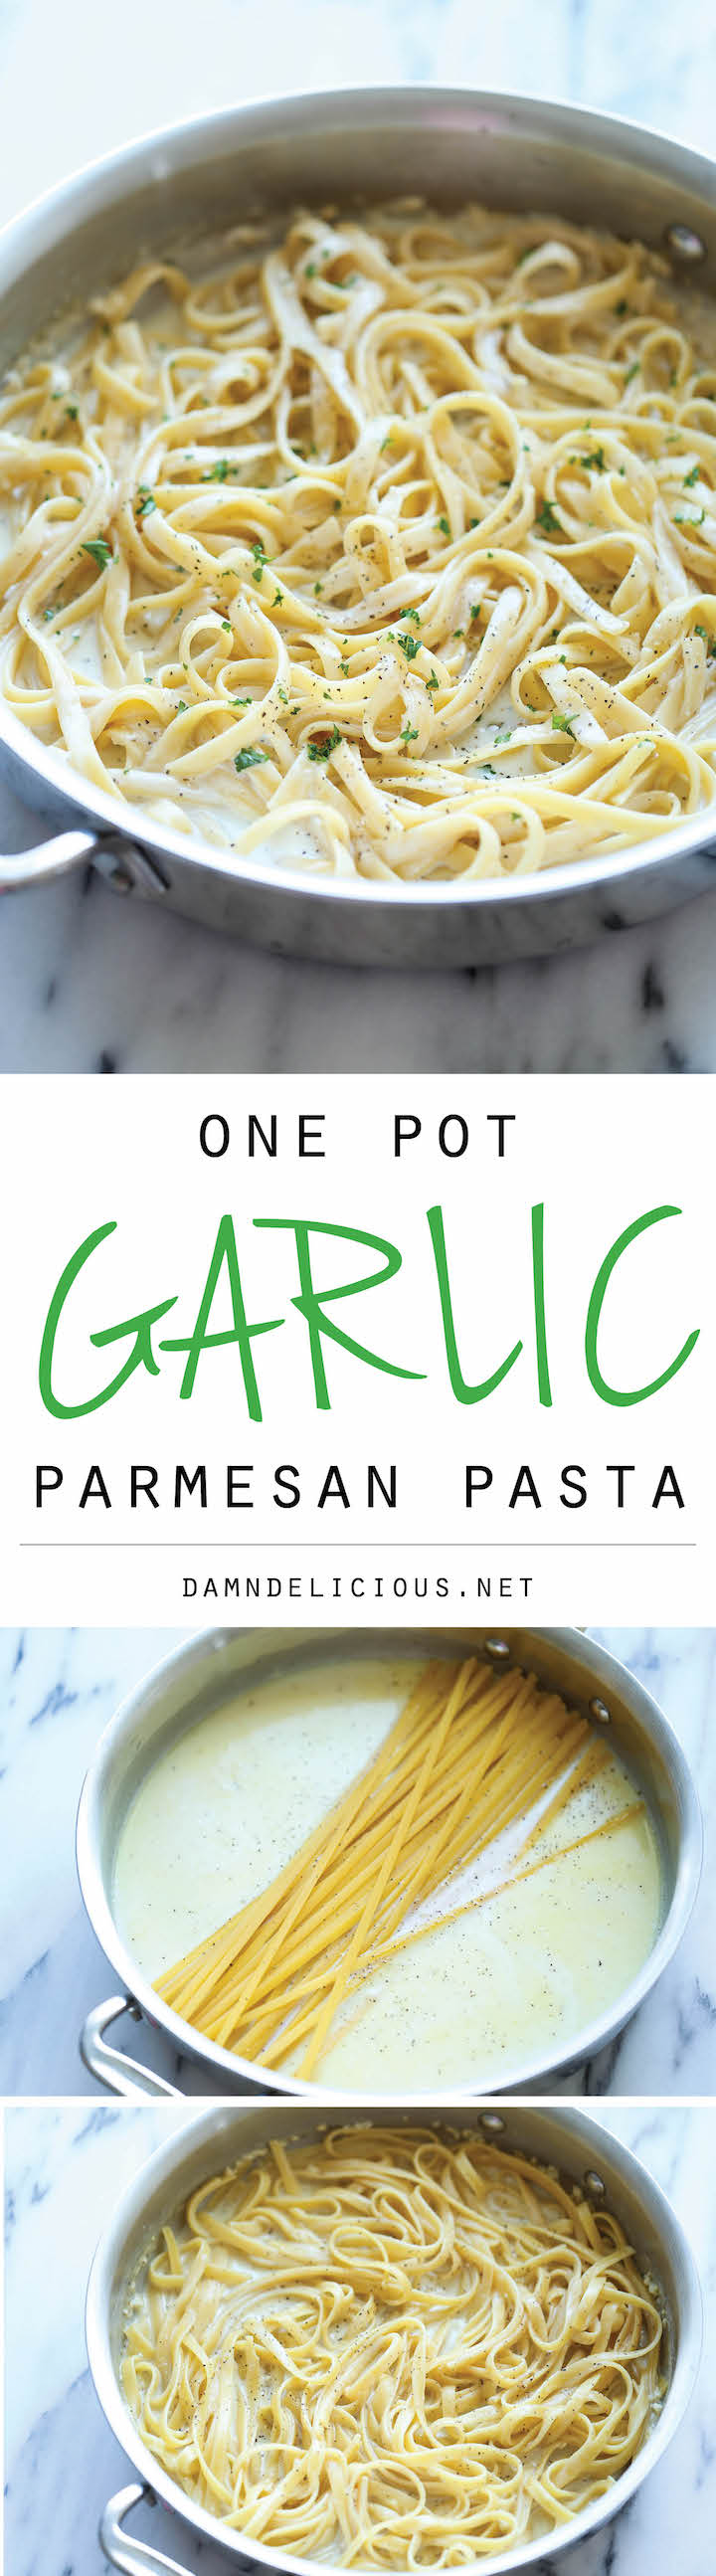 One Pot Garlic Parmesan Pasta - The easiest and creamiest pasta made in a single pot - even the pasta gets cooked right in the pan! How easy is that?